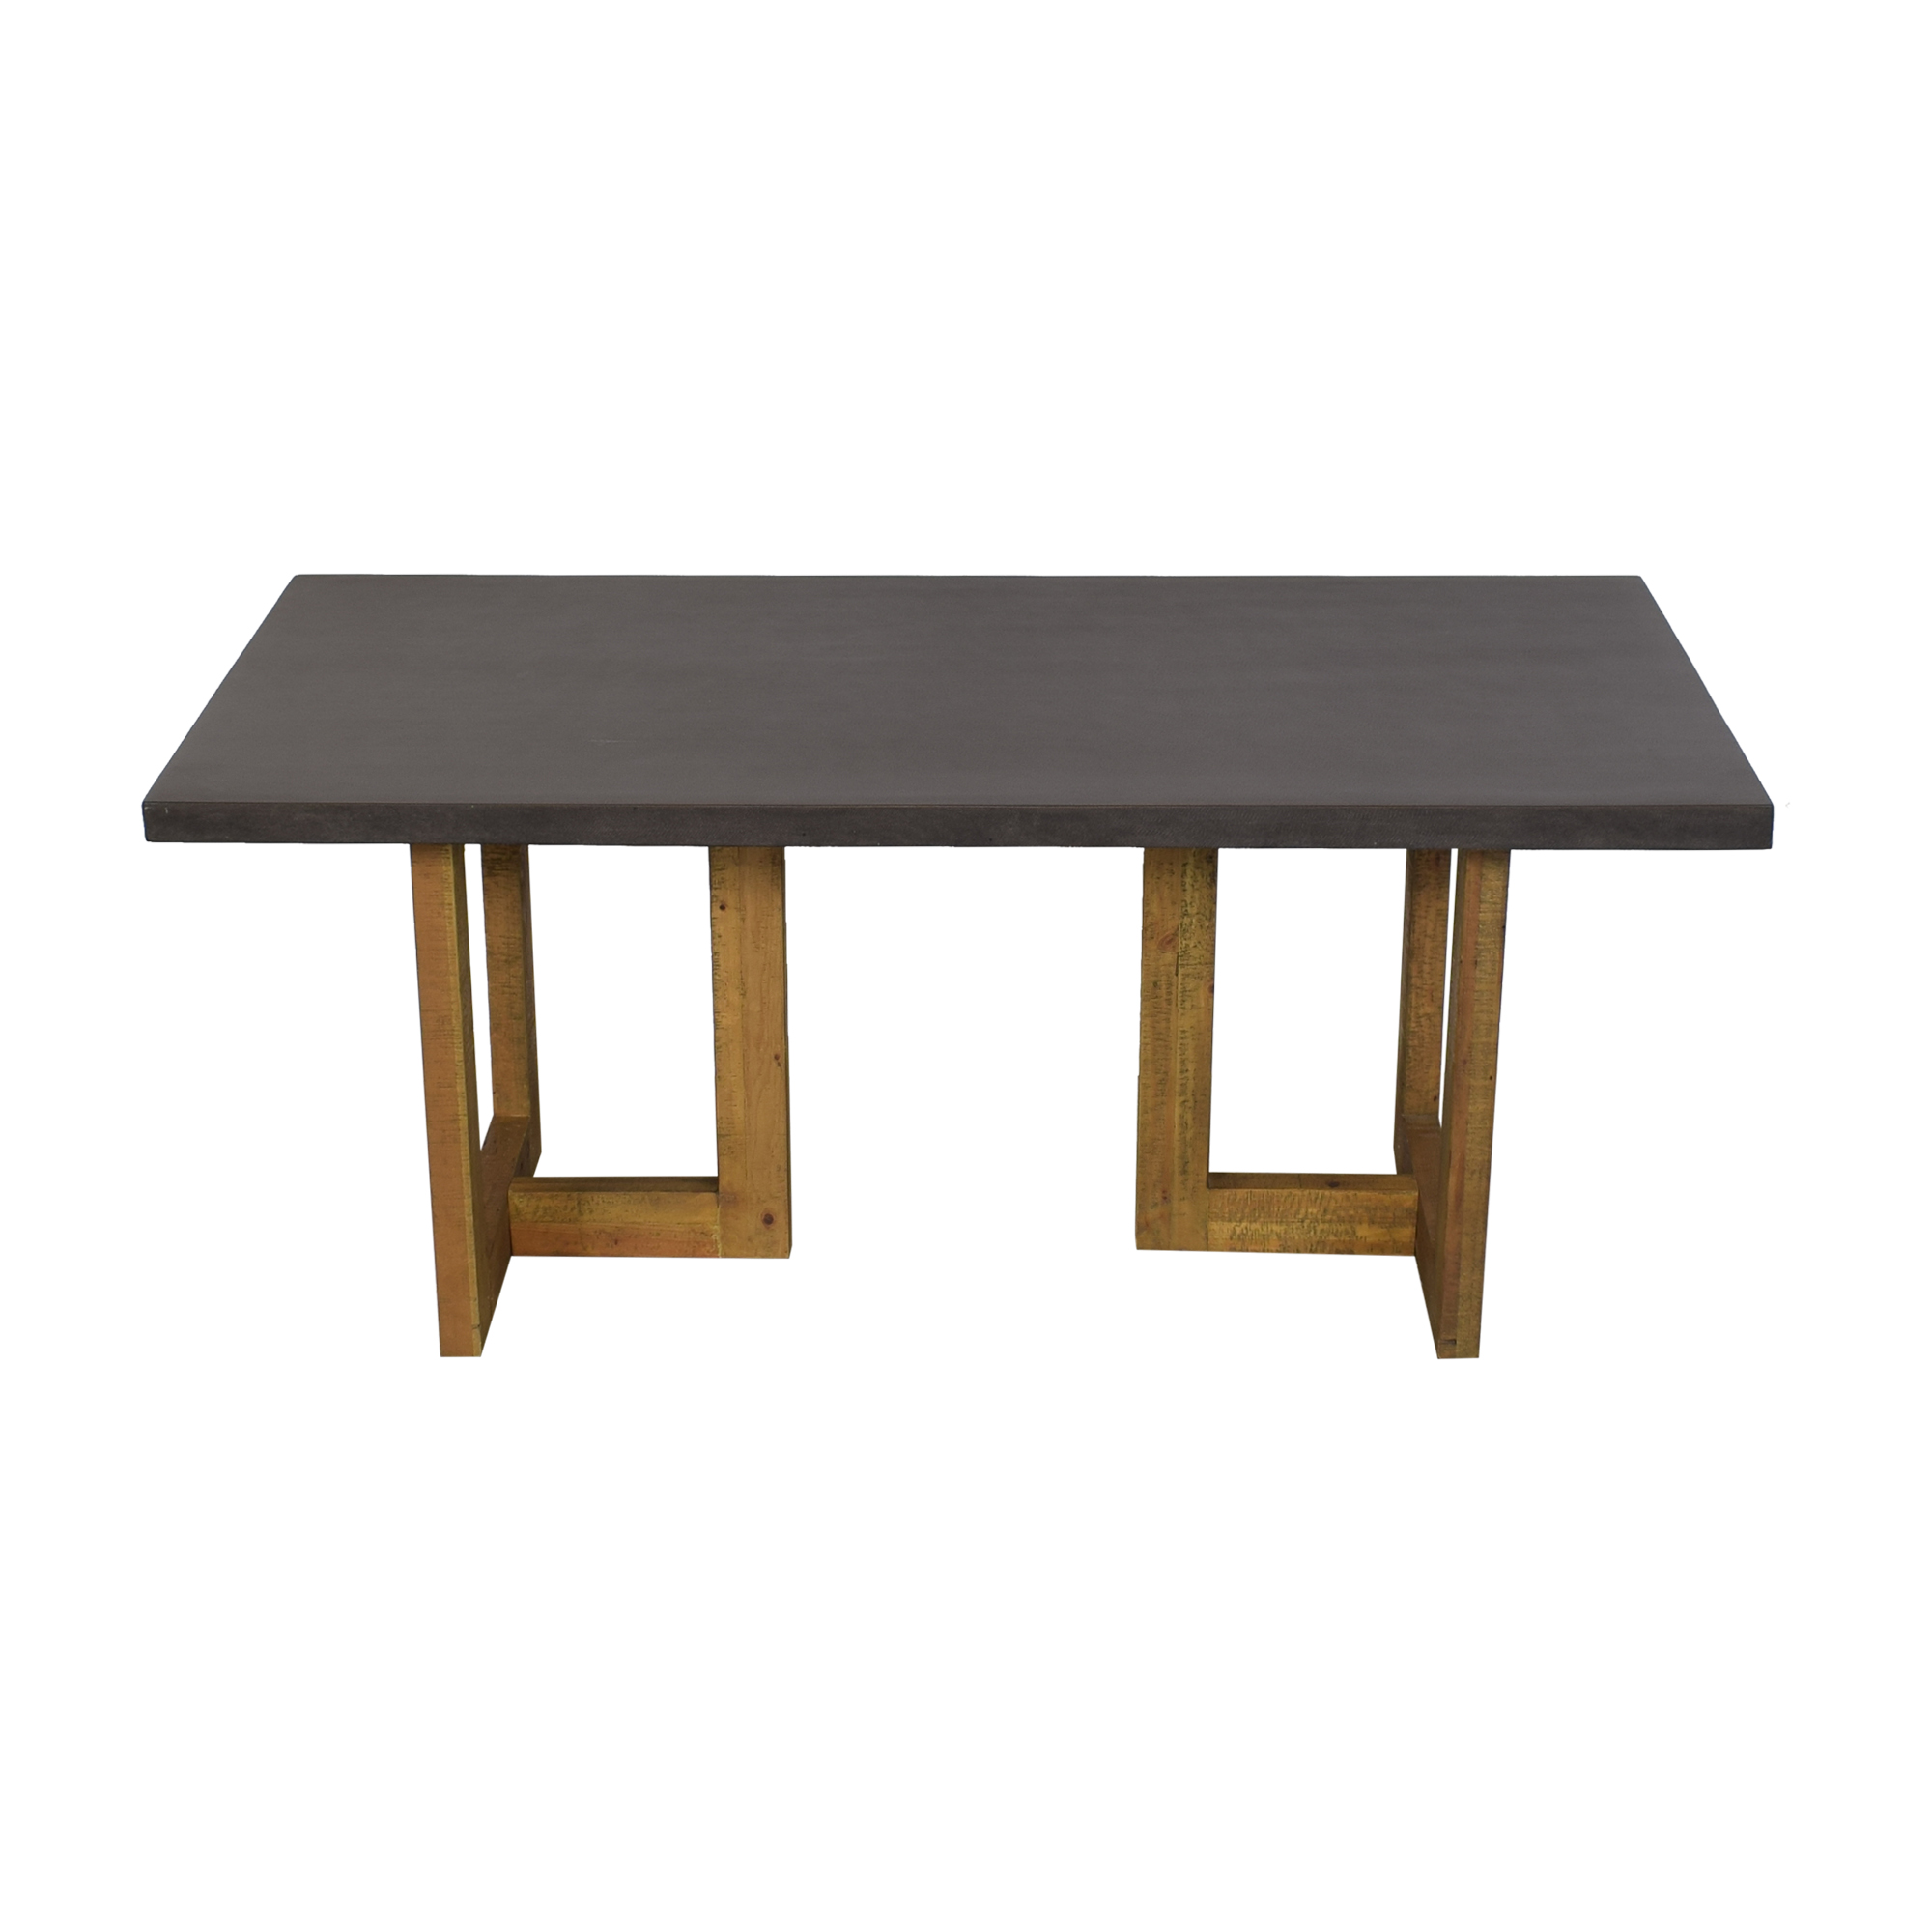 West Elm West Elm Ashton Lava Top Dining Table used